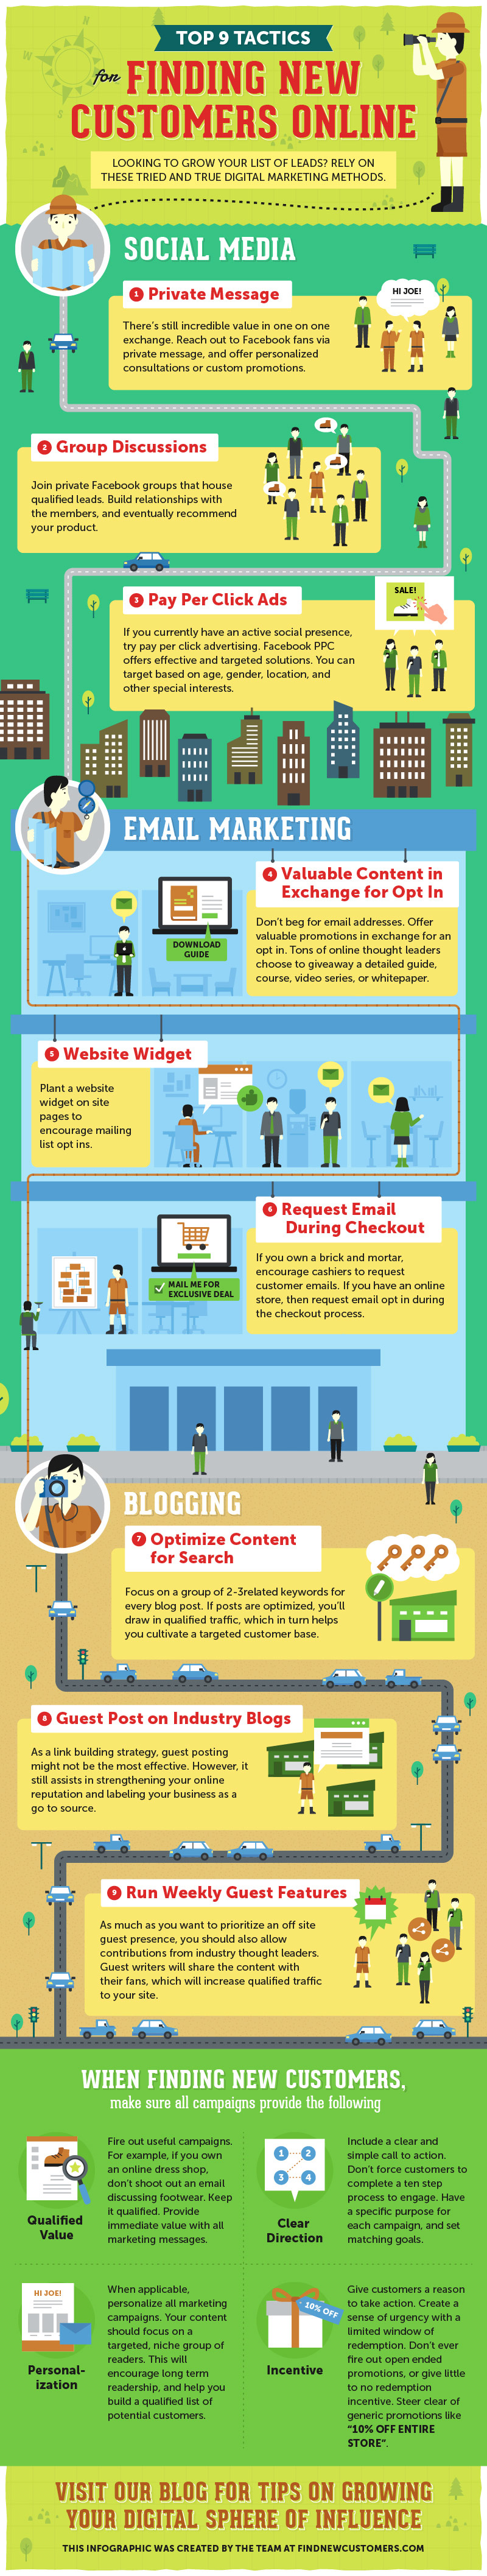 Infographic: 9 Tactics for Finding Customers Online